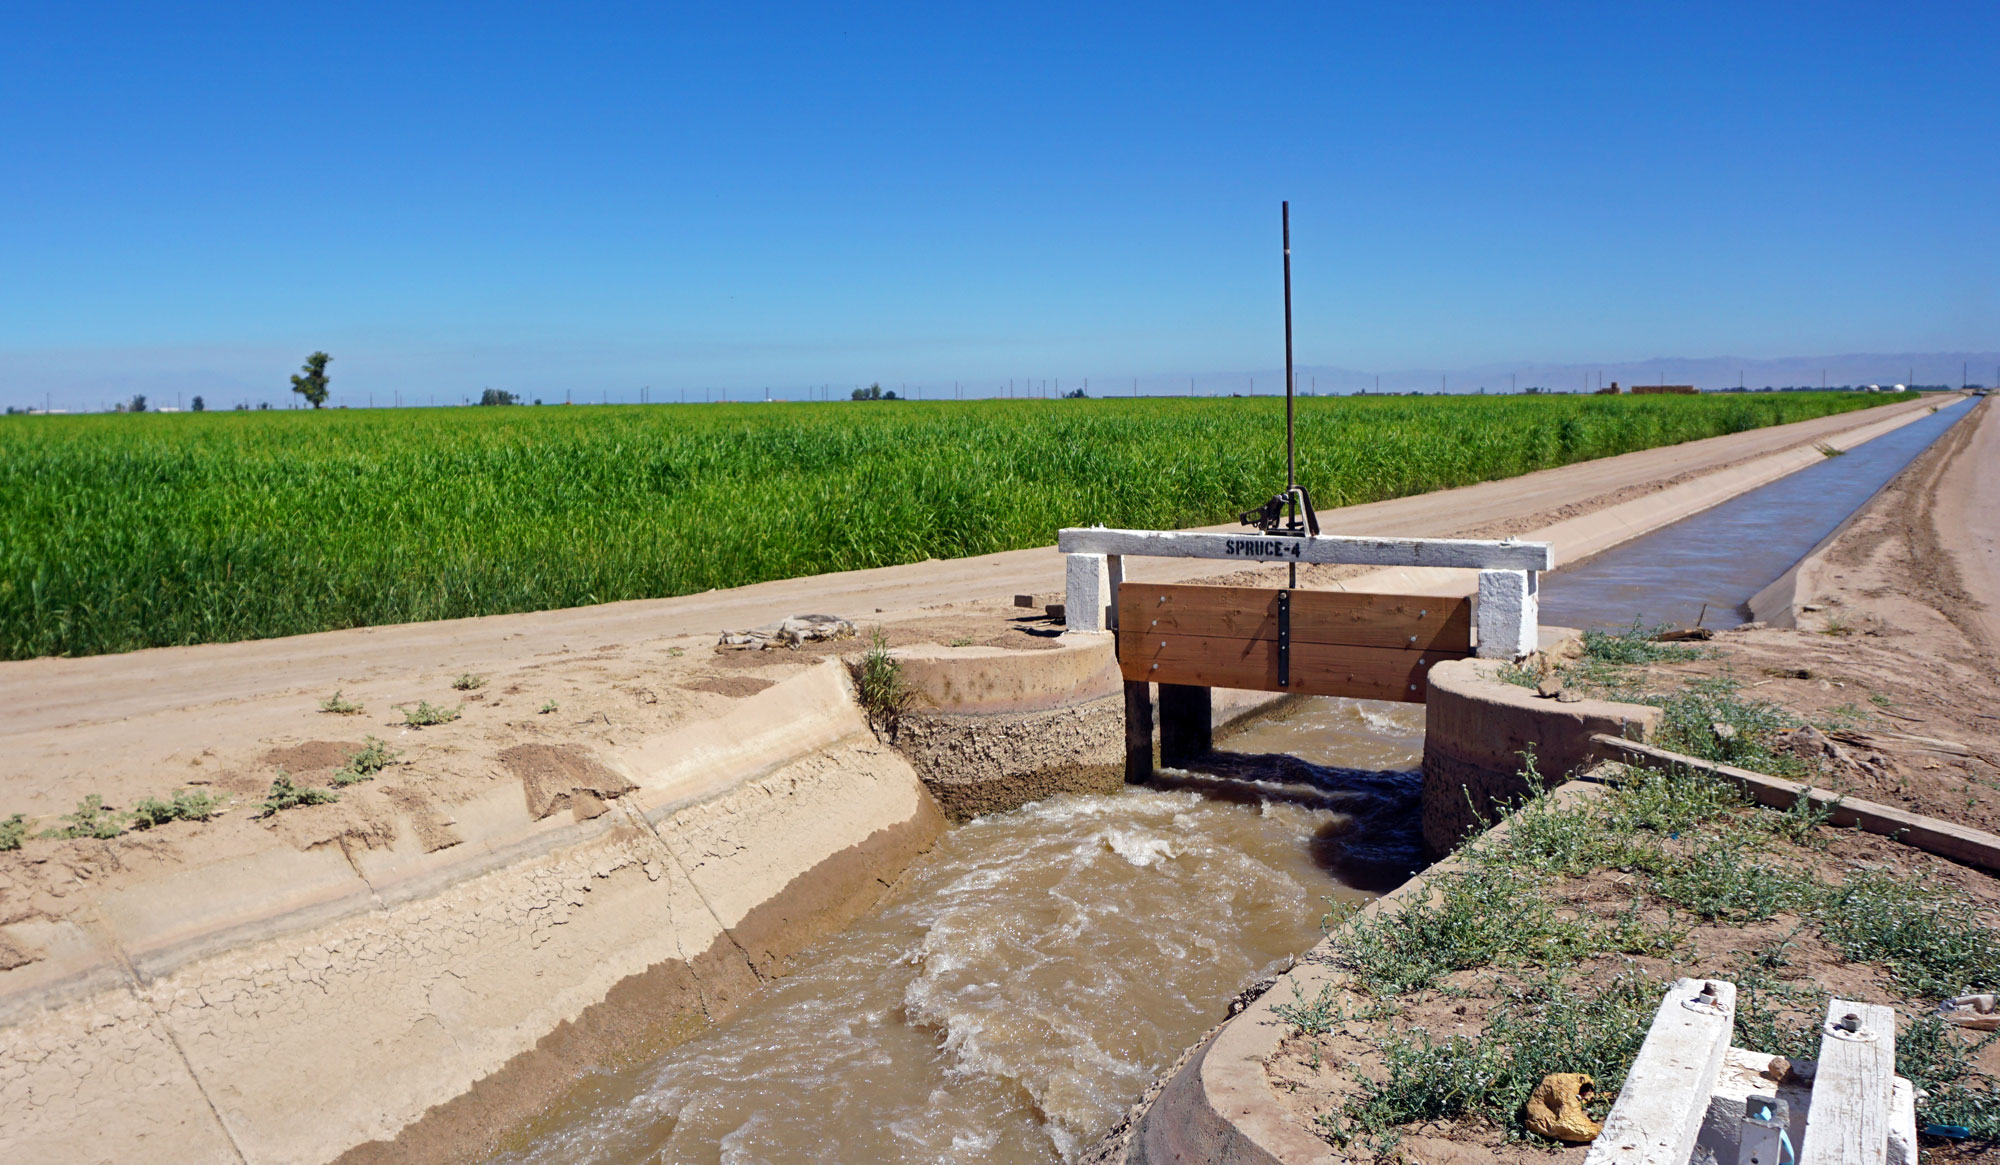 The Imperial Valley produces around two-thirds of the country's vegetables in the winter, solely with Colorado River water.